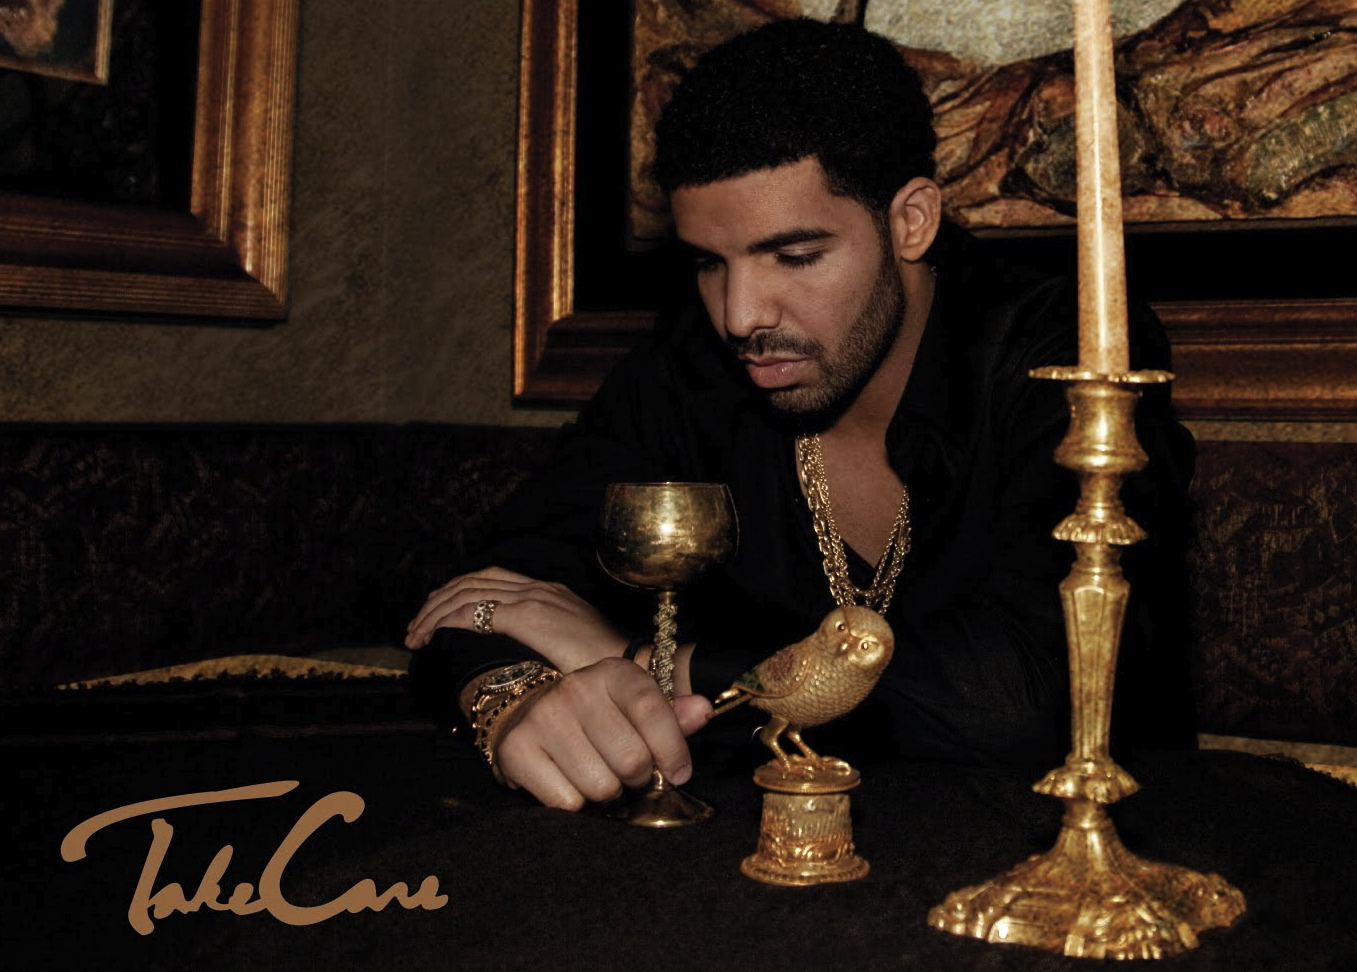 http://4.bp.blogspot.com/-Ha6OgMlWT34/Ts0v0iCqHKI/AAAAAAAACaE/jvGzpIR_9t8/s1600/take-care-album-cover.jpg